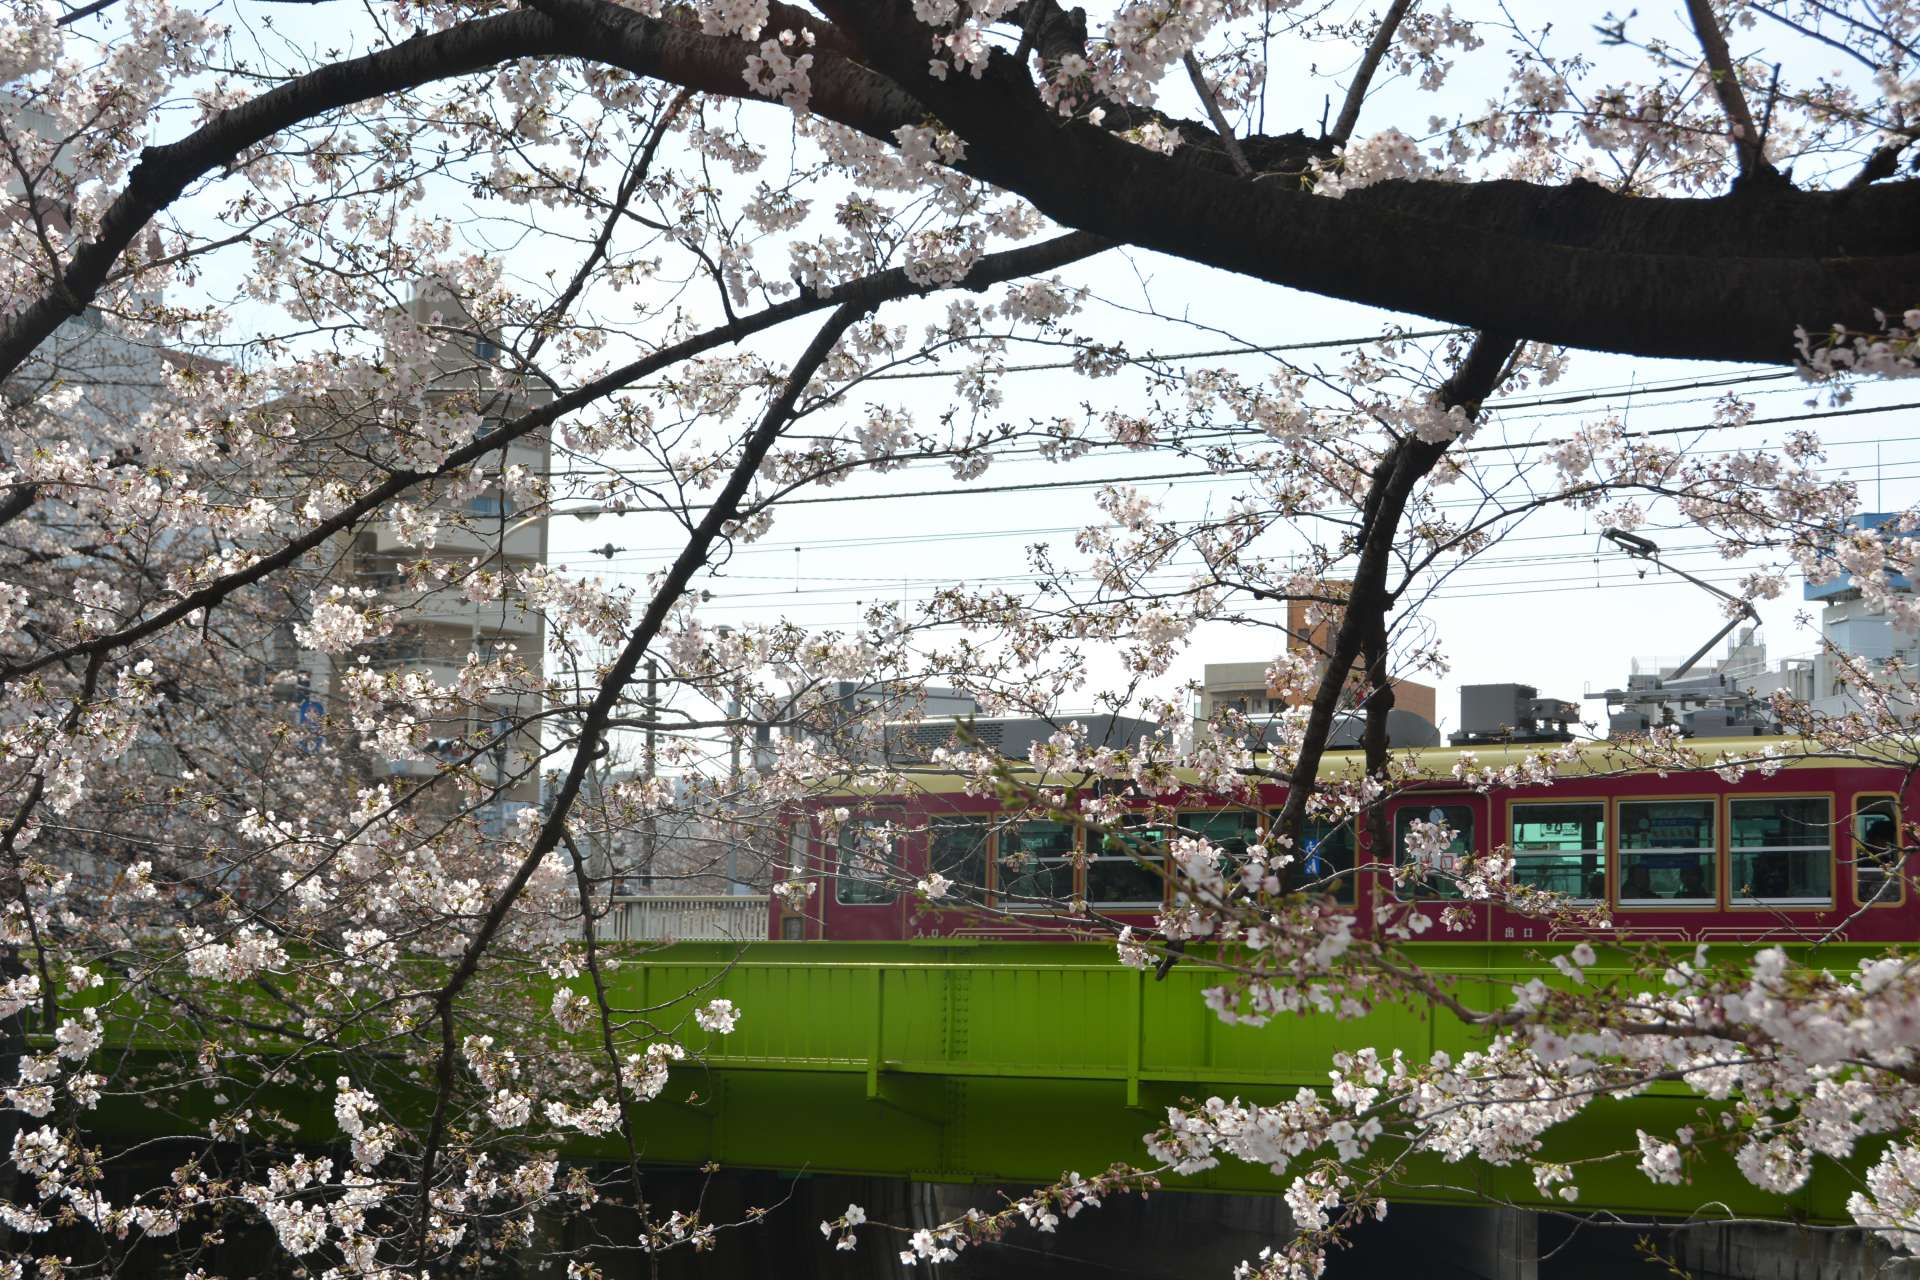 The beautiful scenery of cherry blossoms and a Toden